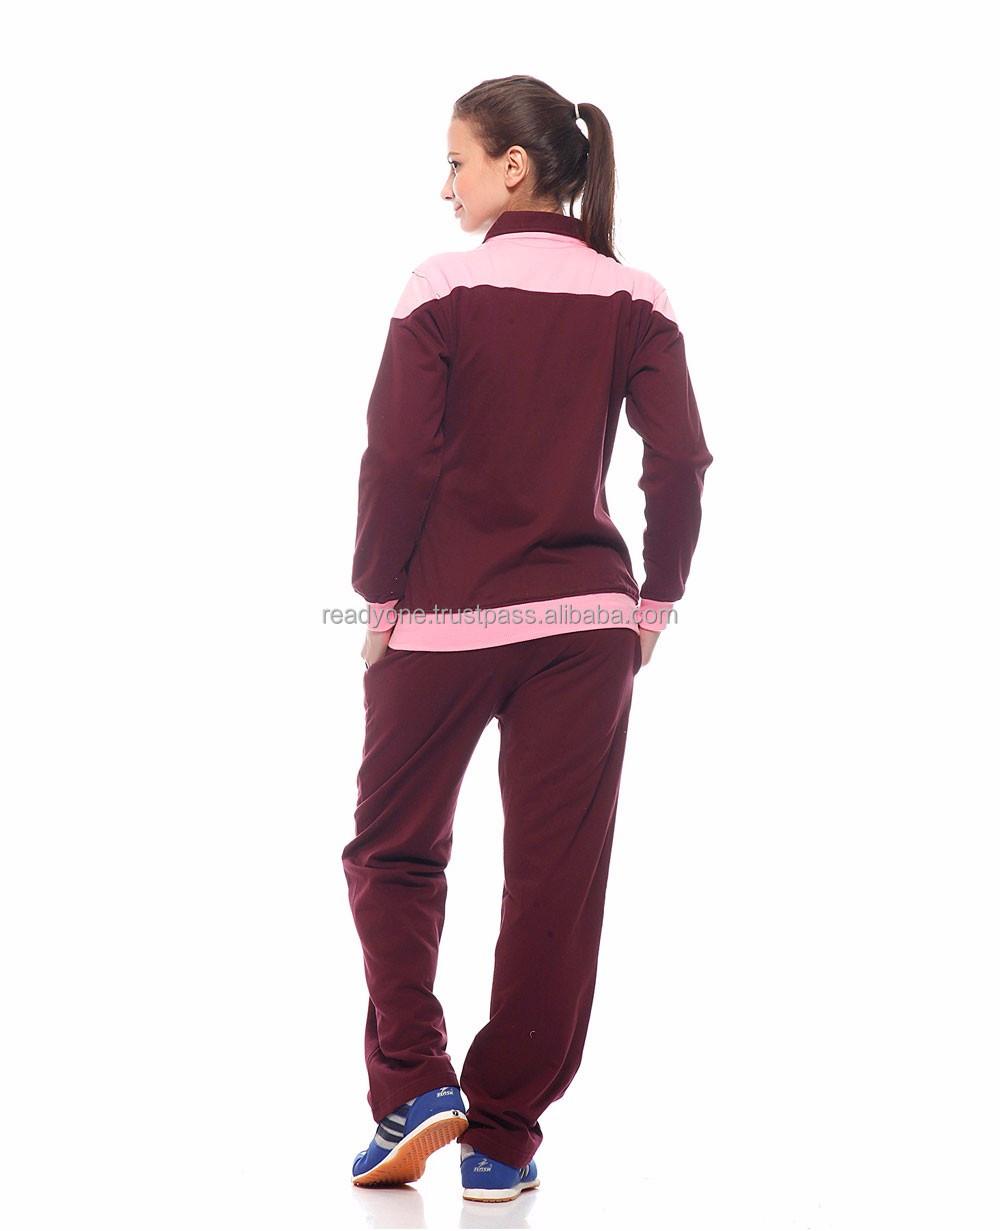 New Fashion Design Velvet Sweat Suit for Ladies / top quality Velvet custom sweatsuit for women